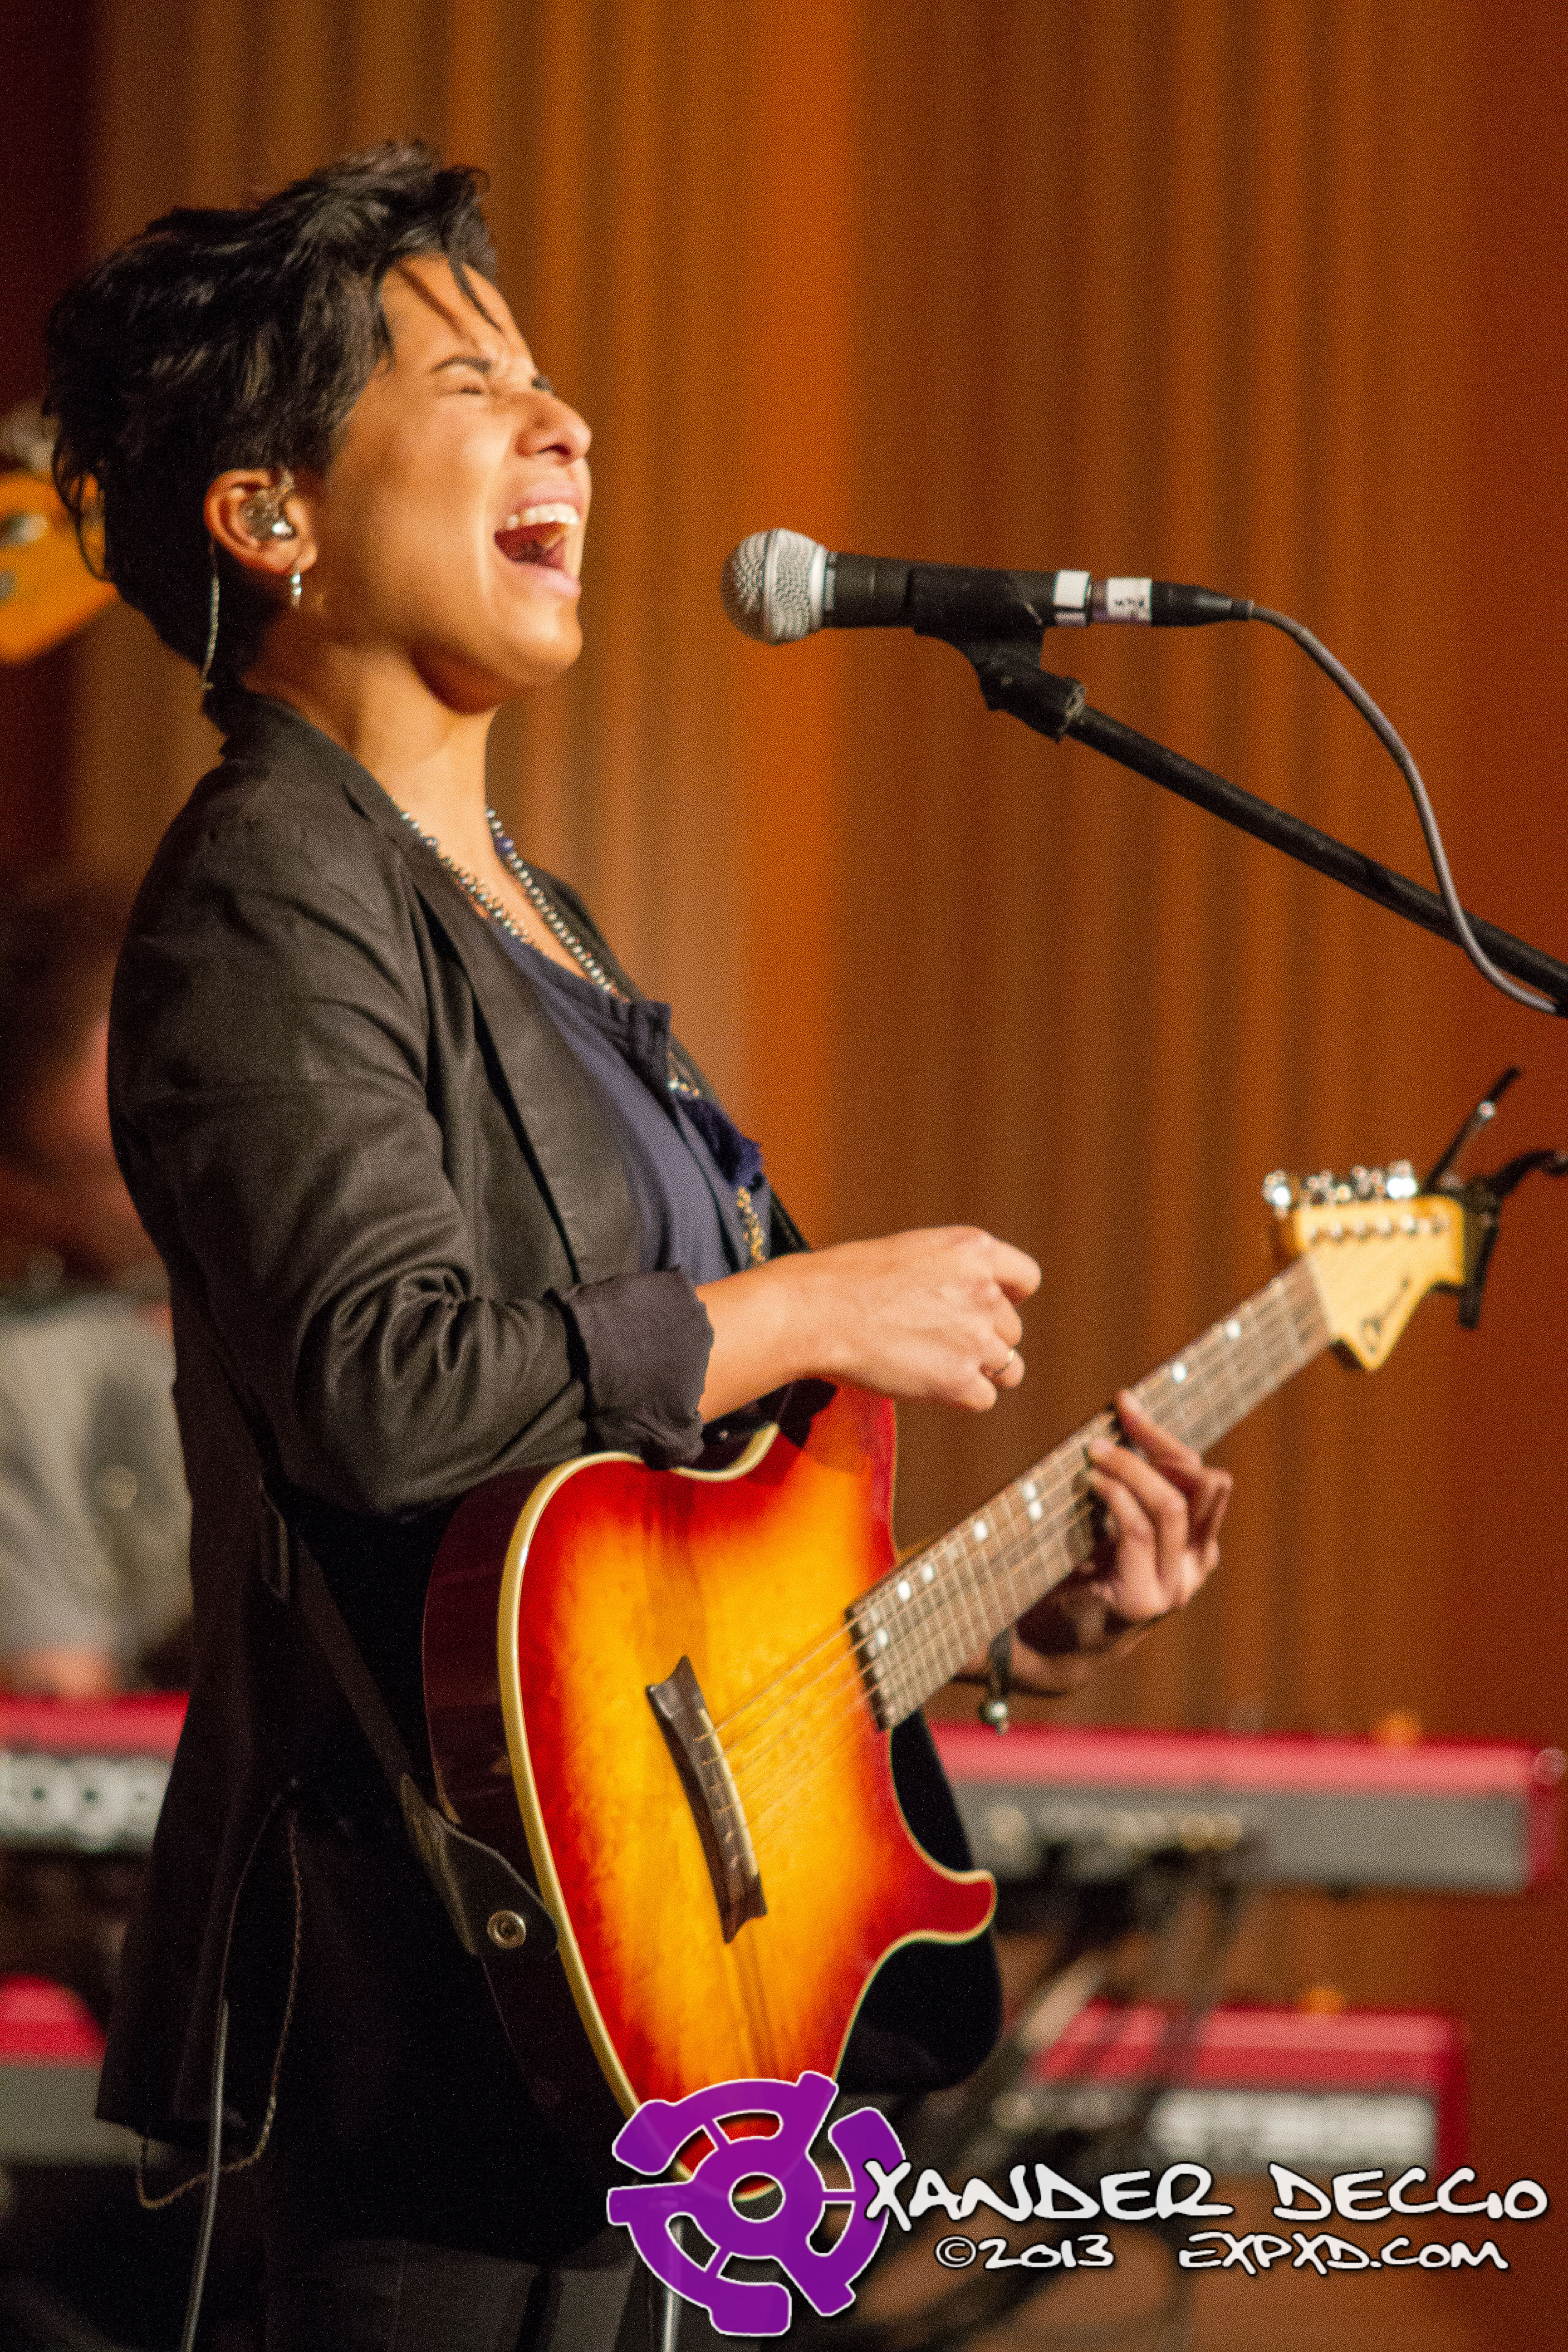 Vicci Martinez @ The Seasons Performance Hall (Photo By Xander Deccio)